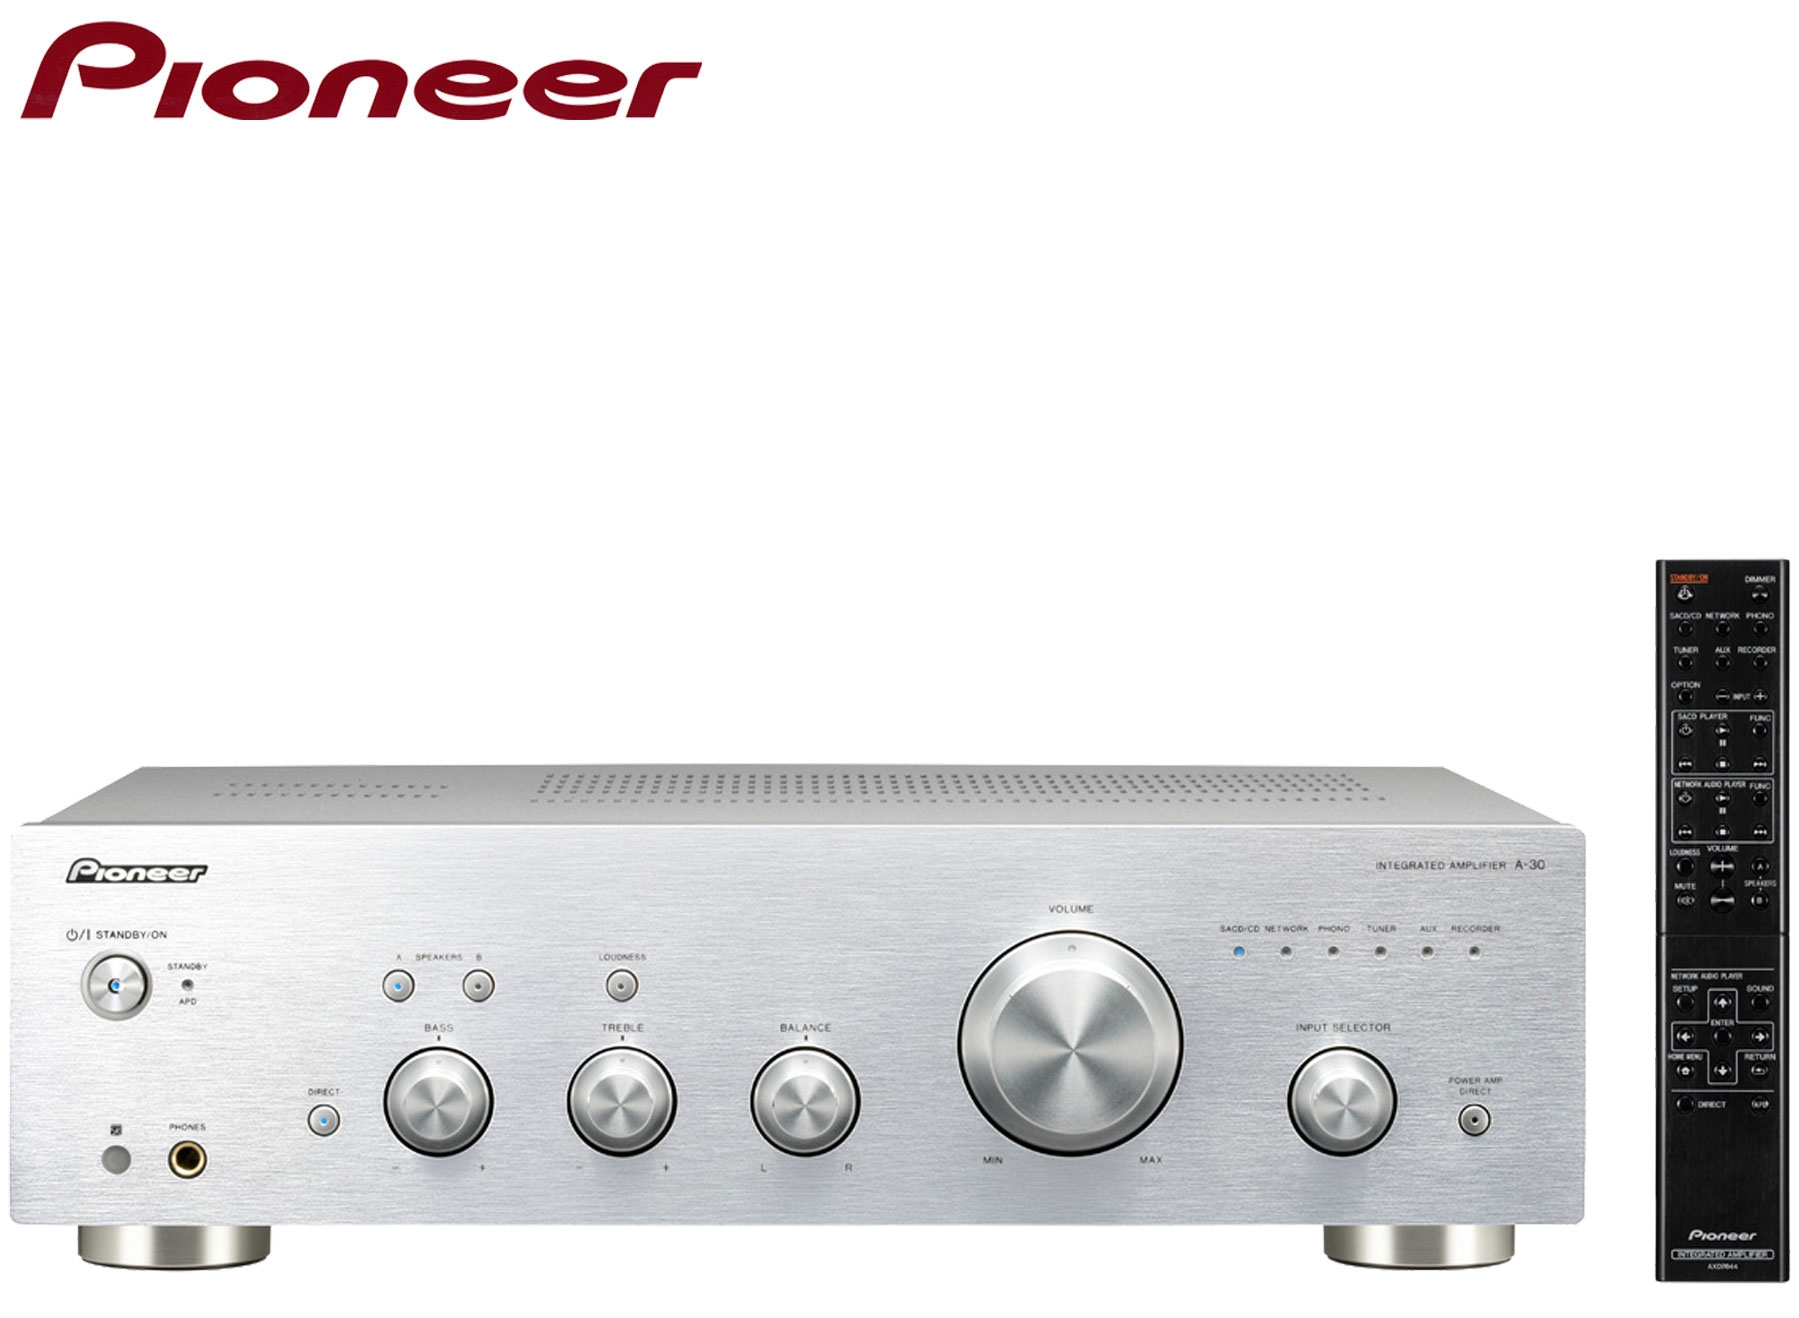 Pioneer A-30 Stereo Amplifier with Direct Energy Design | Silver